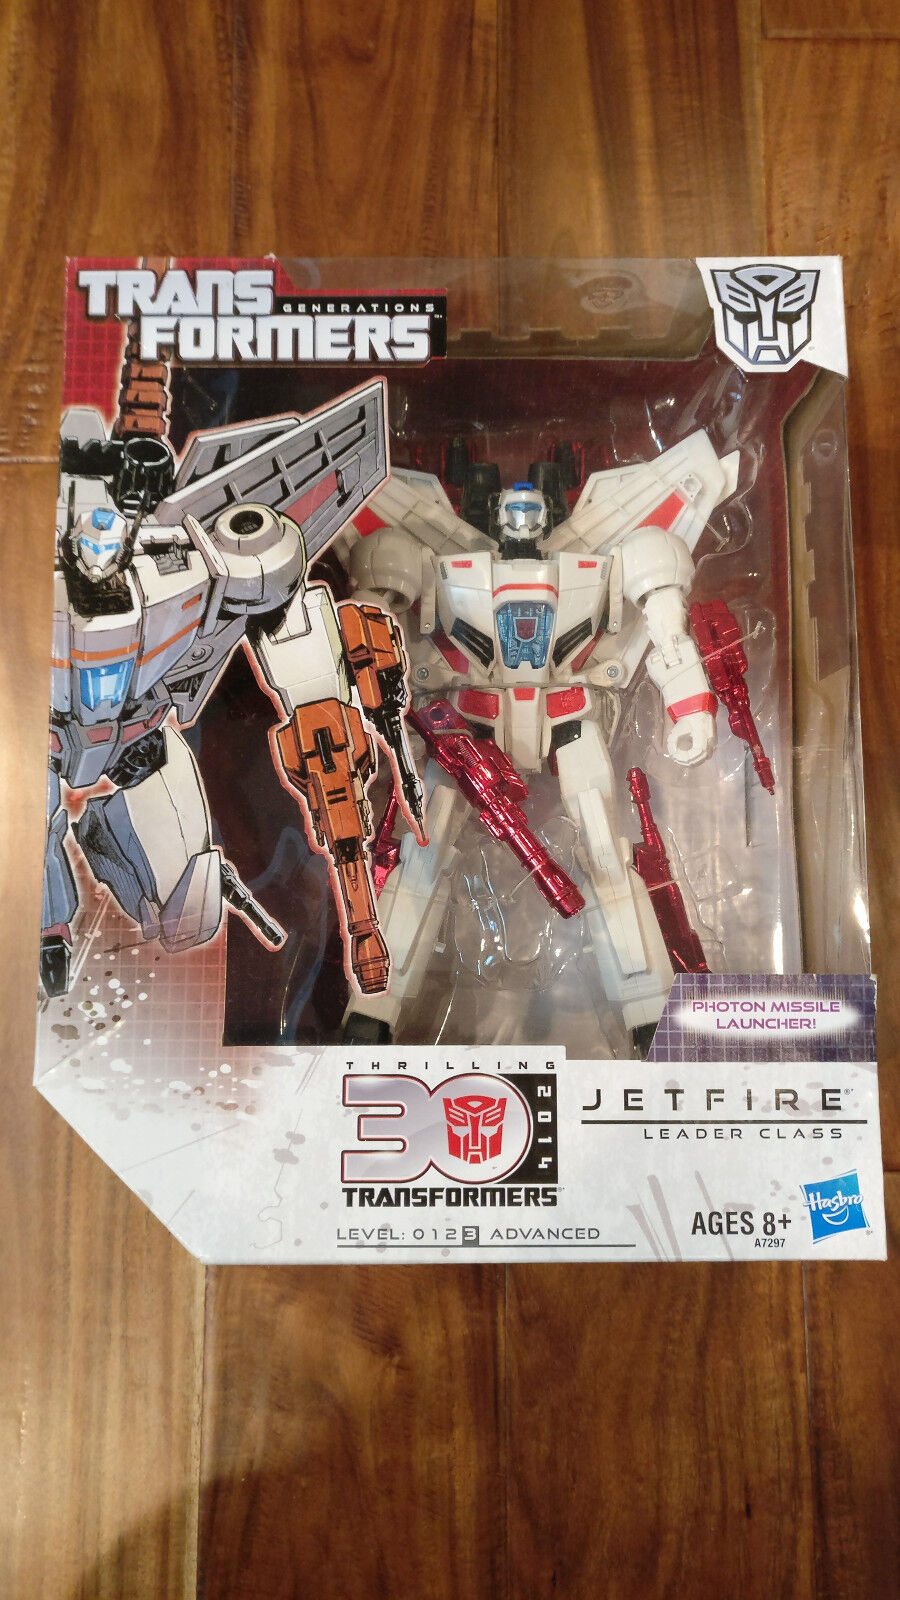 Hasbro Autobot Transformers Generations Jetfire Thrilling 30 Leader Class NEW